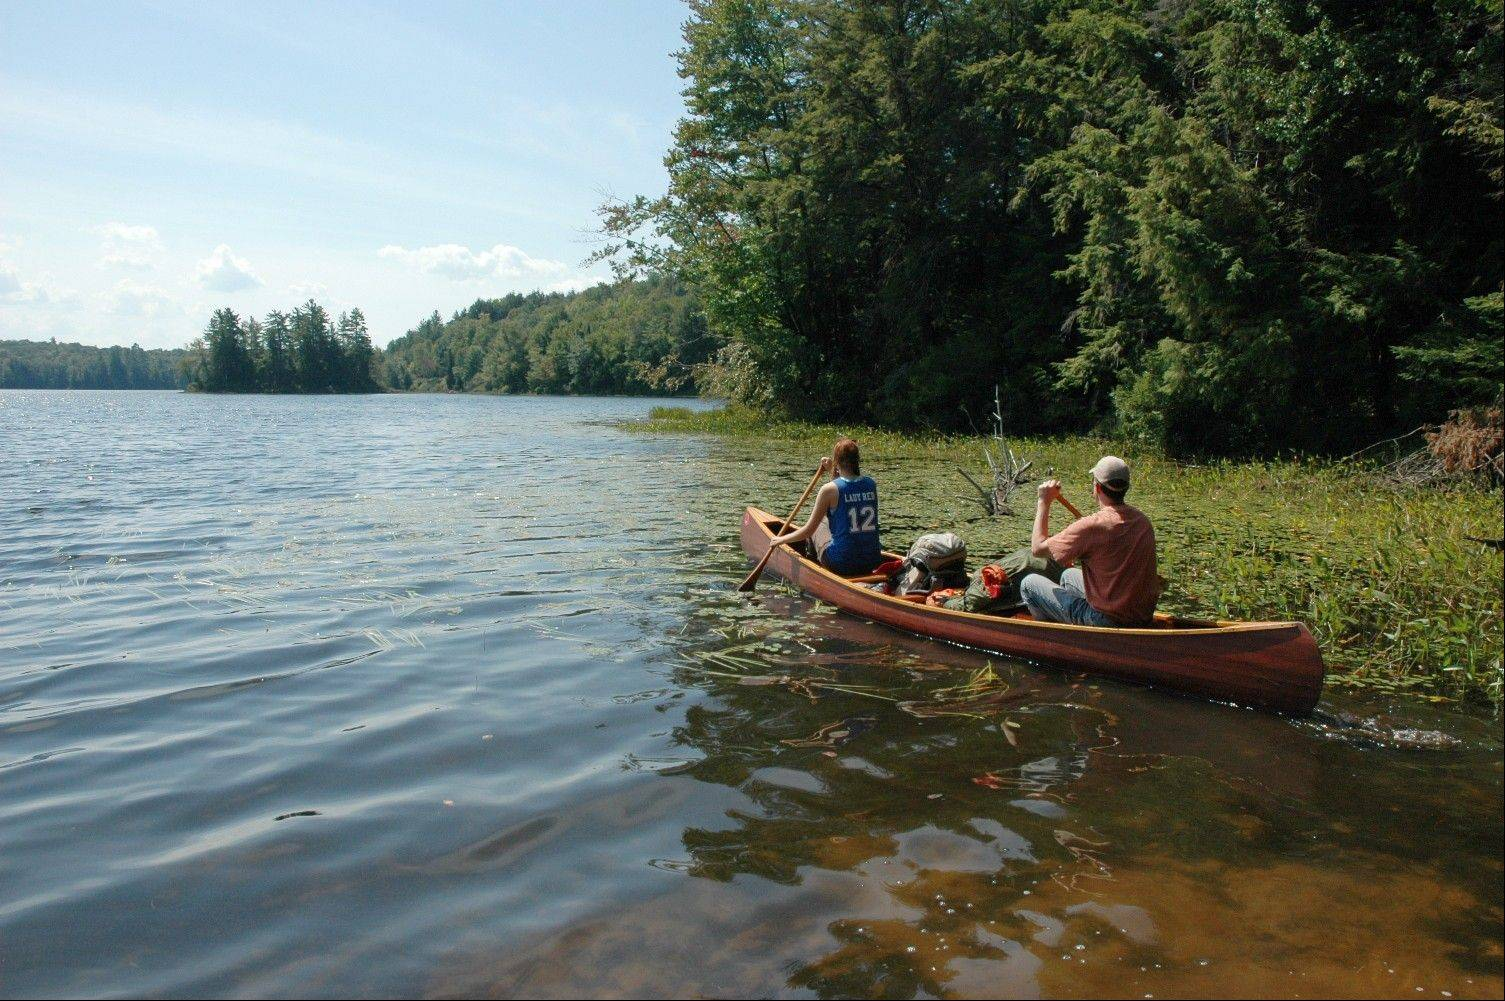 Leah and Bruce Nelson, of Albany, N.Y., paddle a canoe loaded with camping gear onto Floodwood Pond in the Saranac Lakes Wild Forest at Saranac Lake, N.Y.